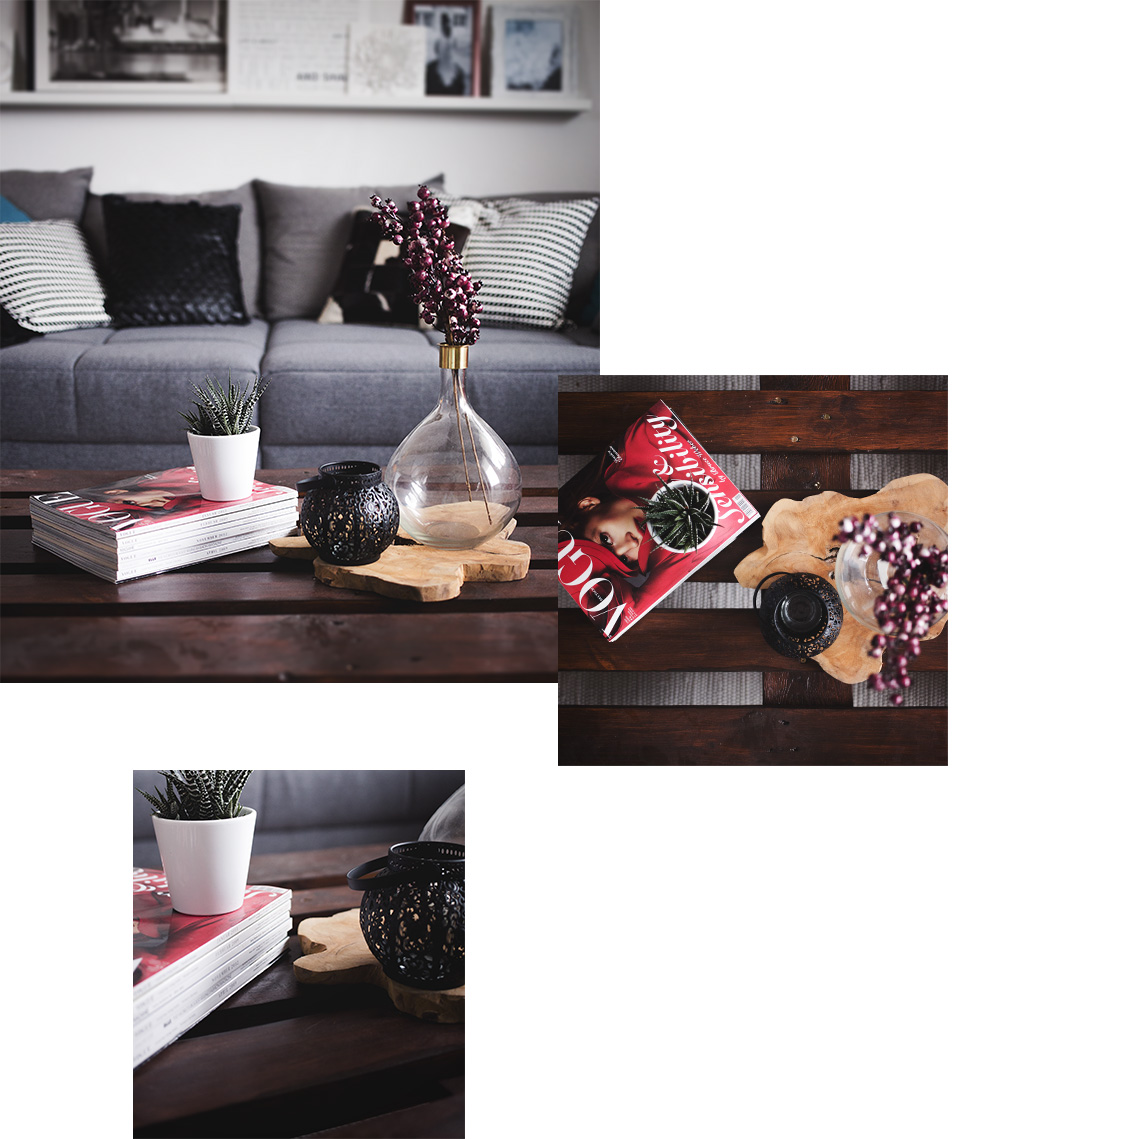 How to style a coffee Table?